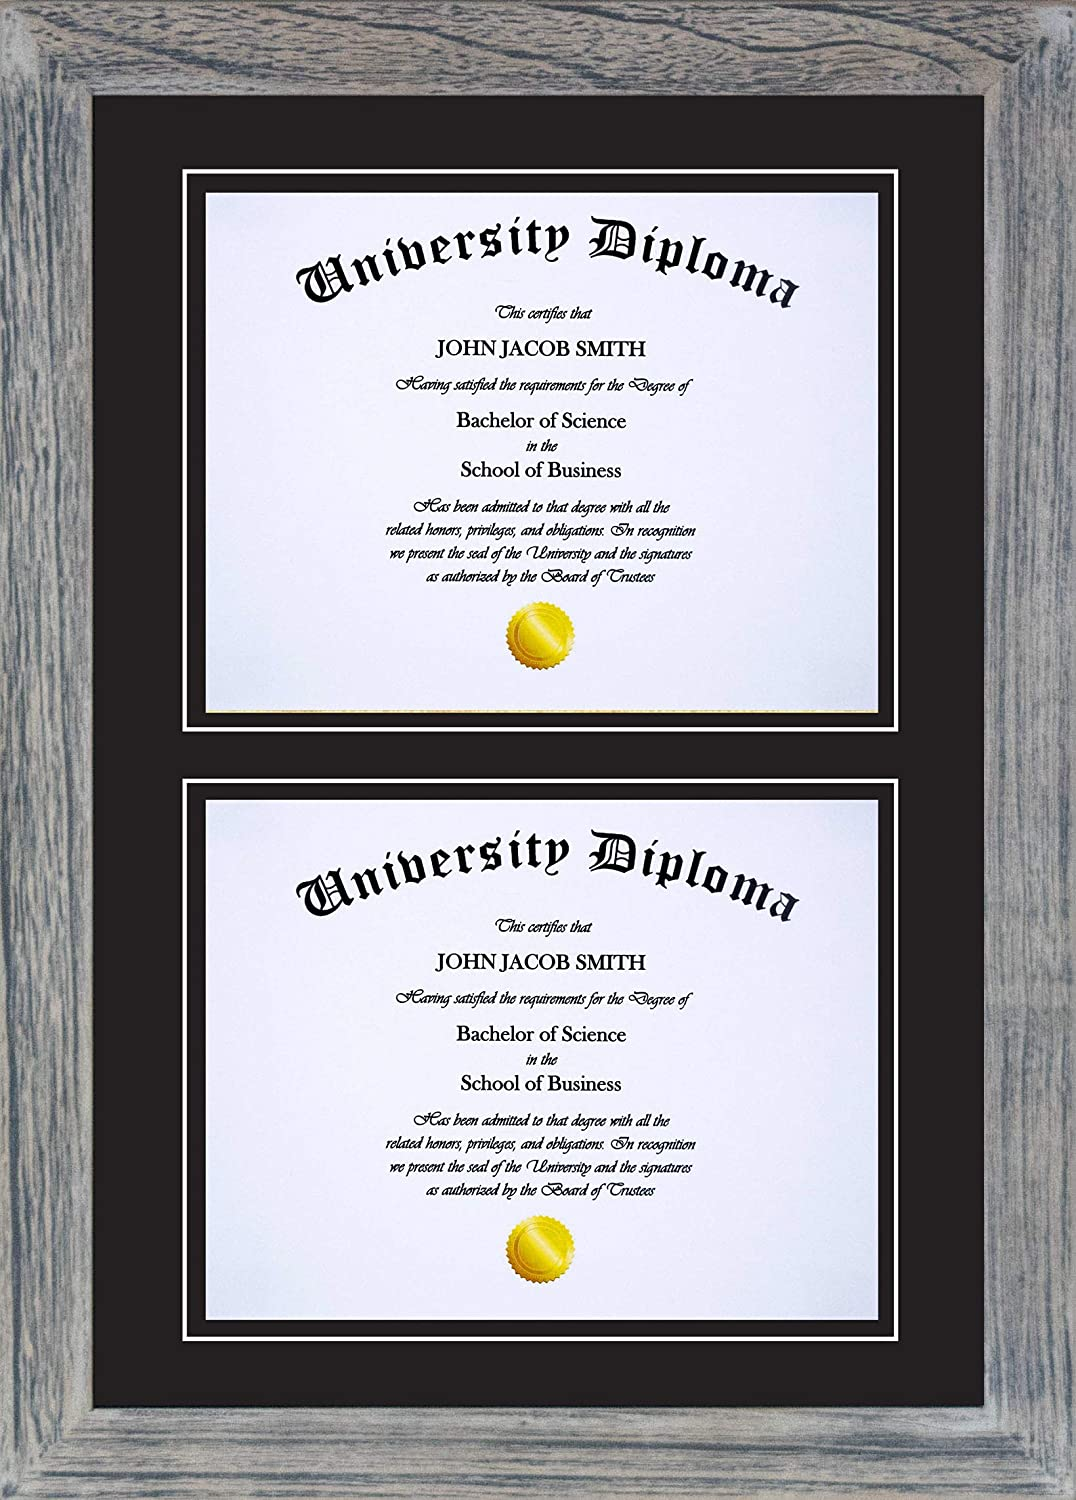 CroftLux Double Diploma Fees free Frame Distressed with Limited Special Price f Wood Mat